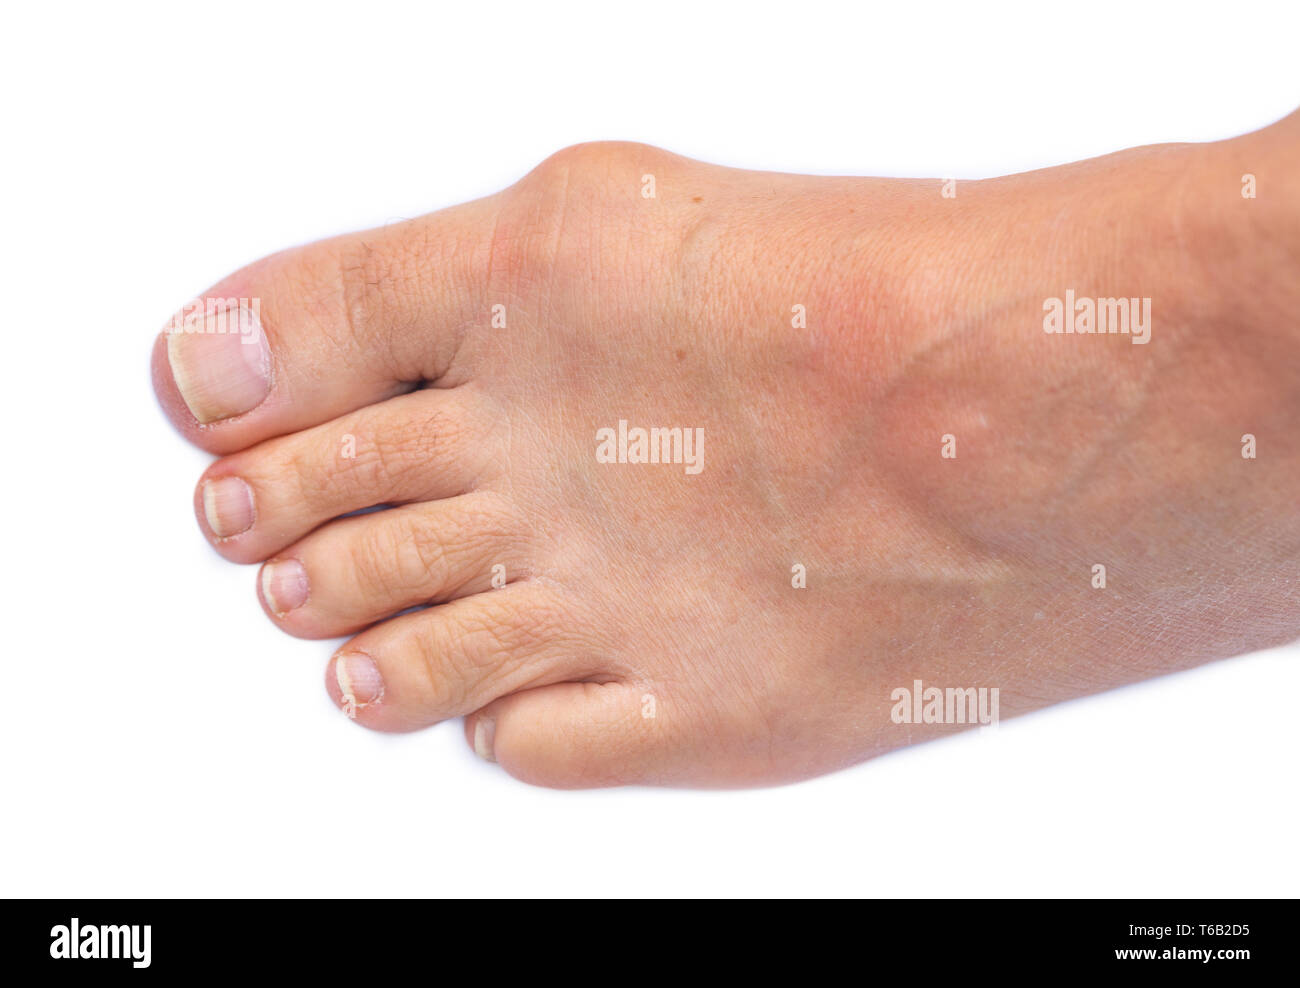 Foot of a woman with painful Hallux Valgus - Stock Image